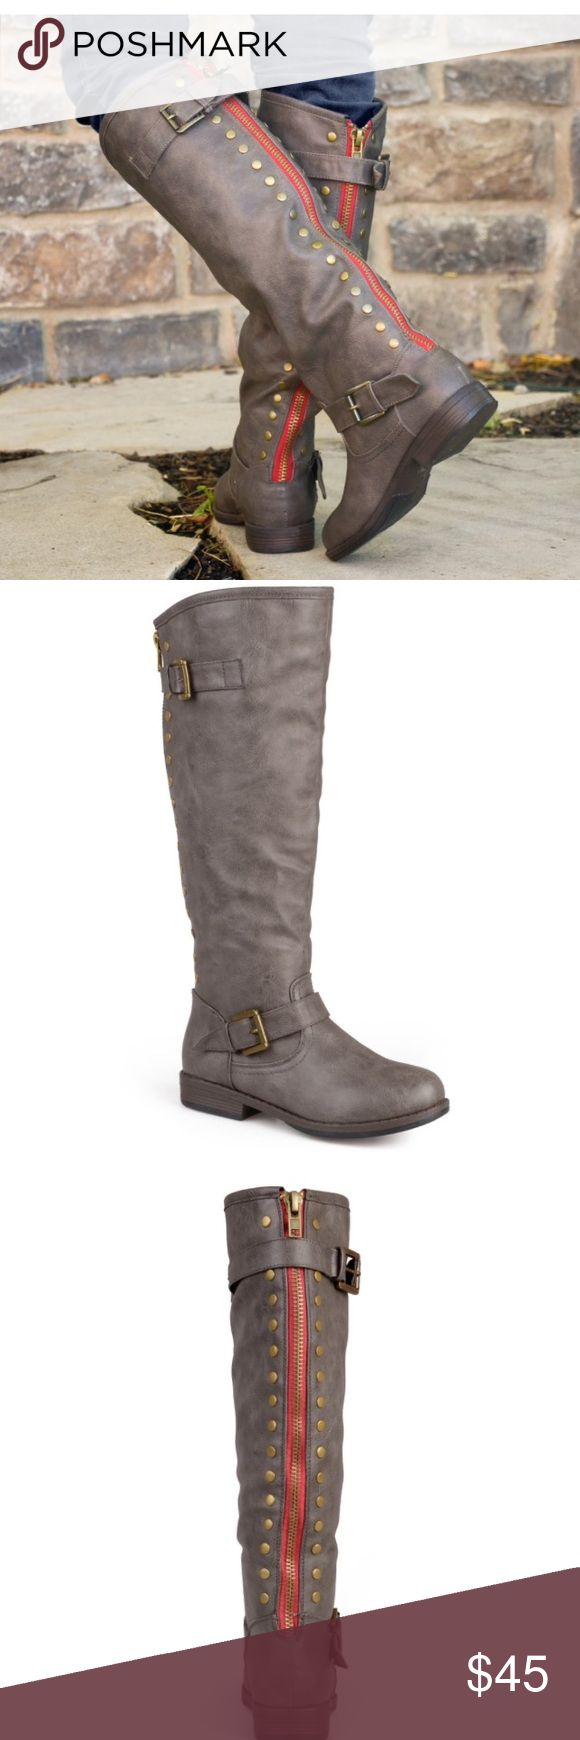 Women's Riding Boot size 7 New With Box- Faux Suede with Red Back Zipper Riding Boot. Madden Girl brand. Color: Taupe. Never worn. Super cute and trendy. Madden Girl Shoes Winter & Rain Boots